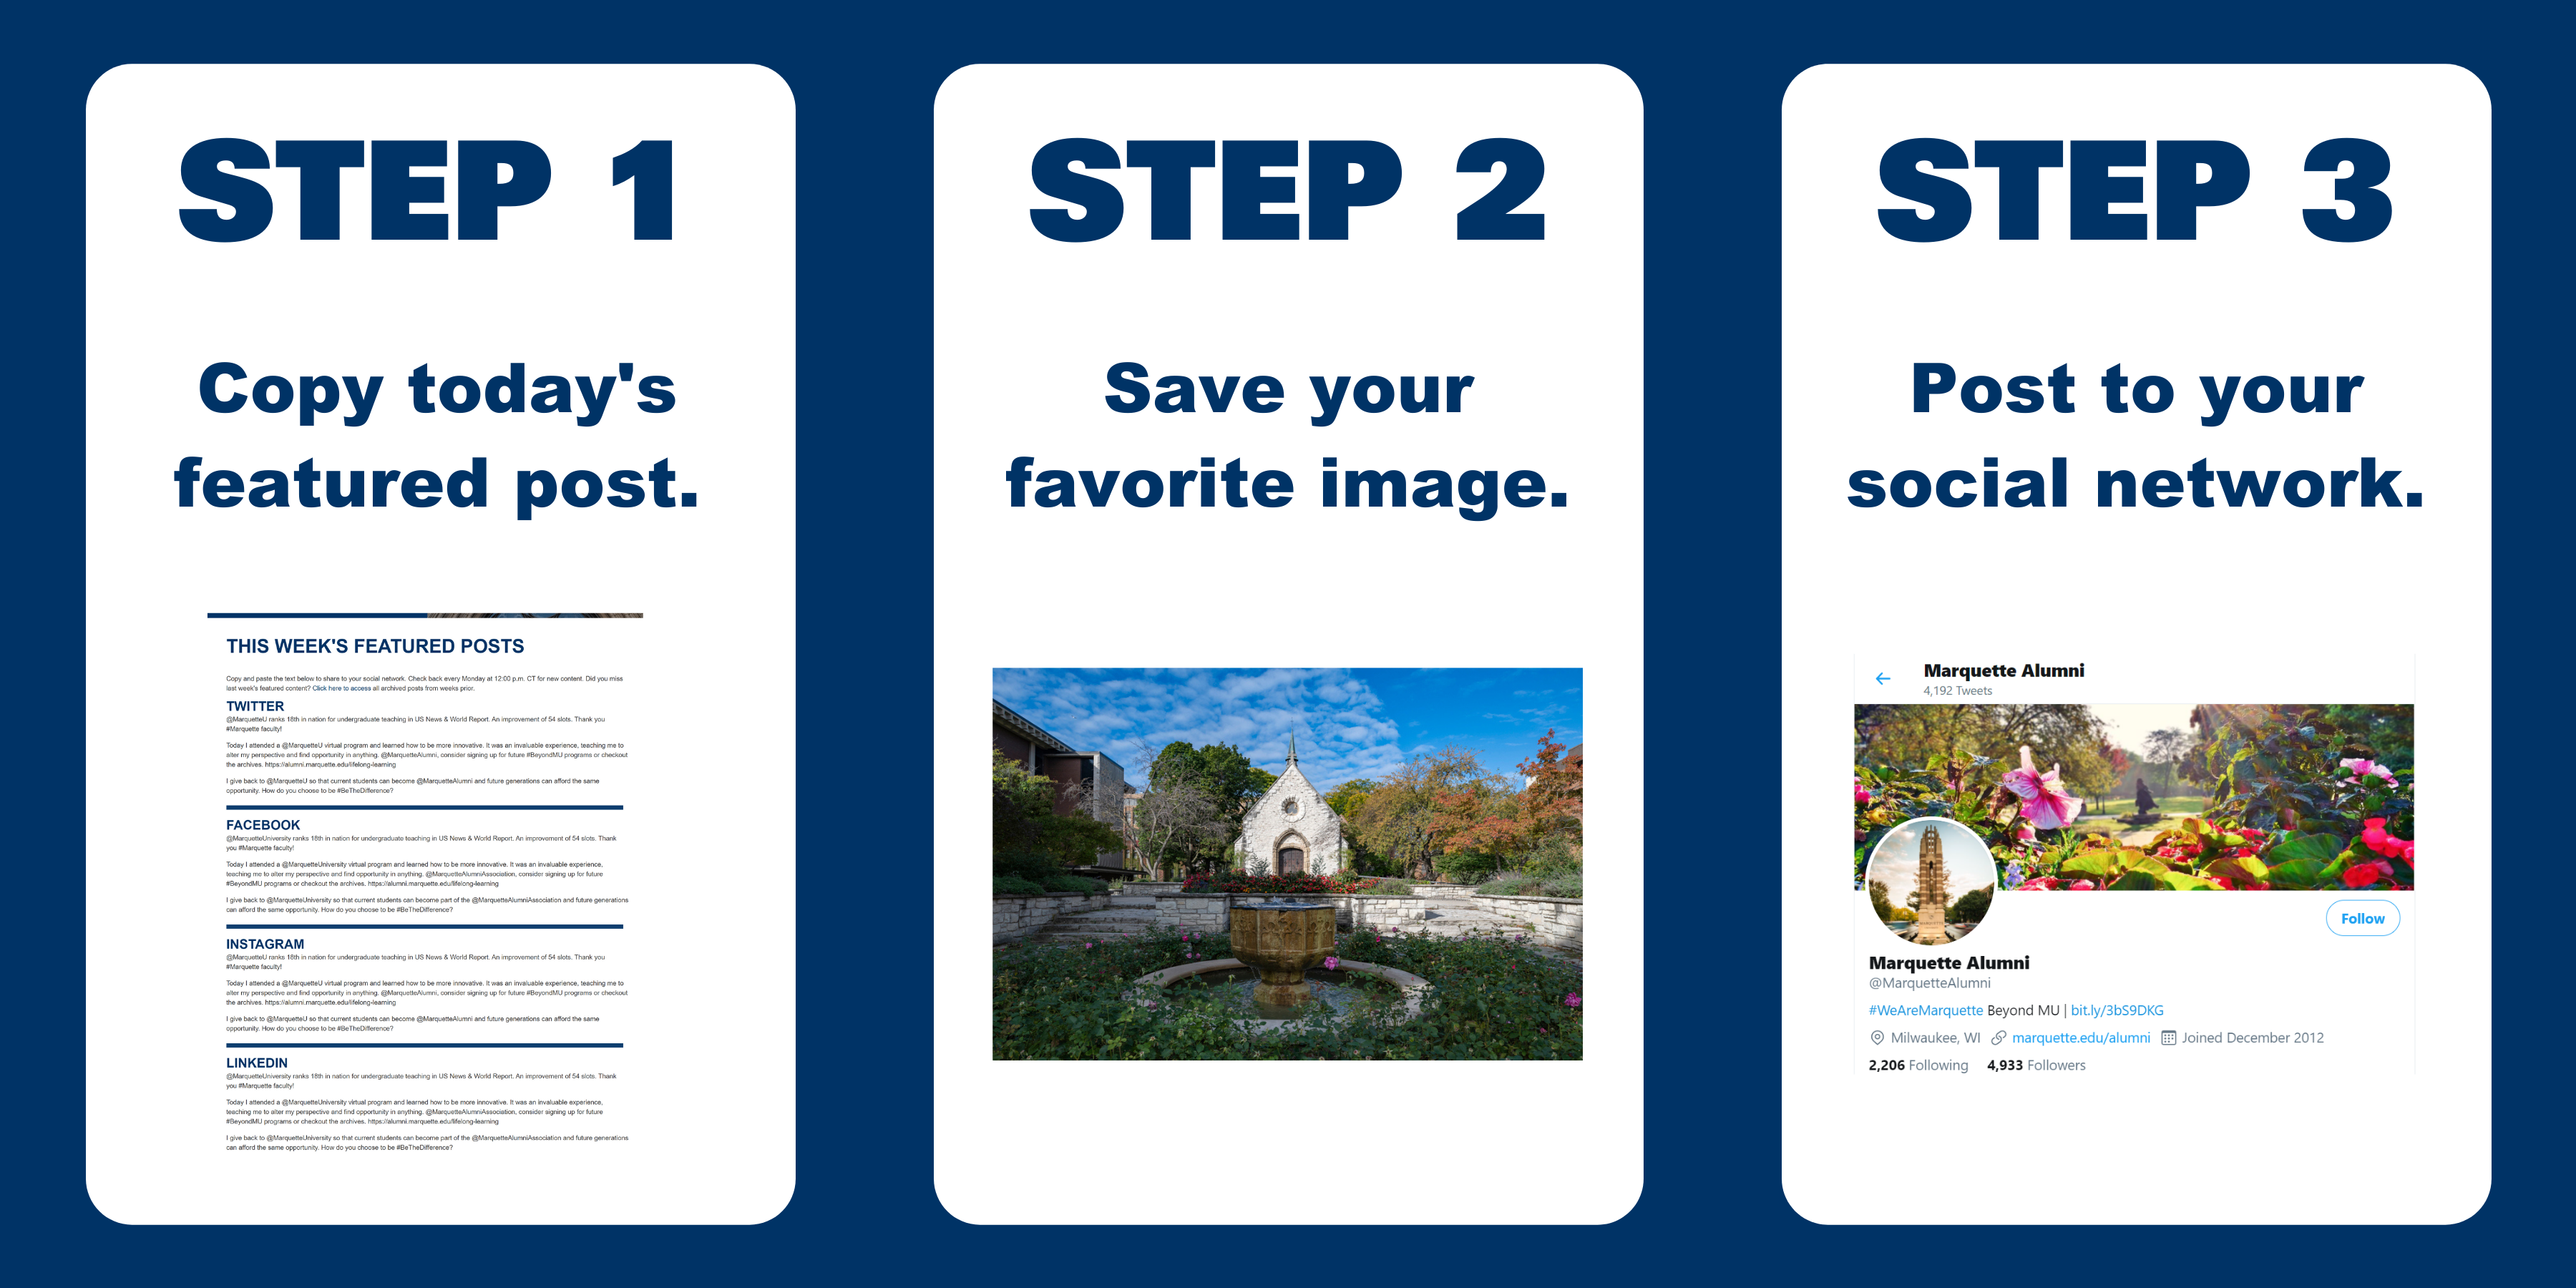 Easy steps to post to social.